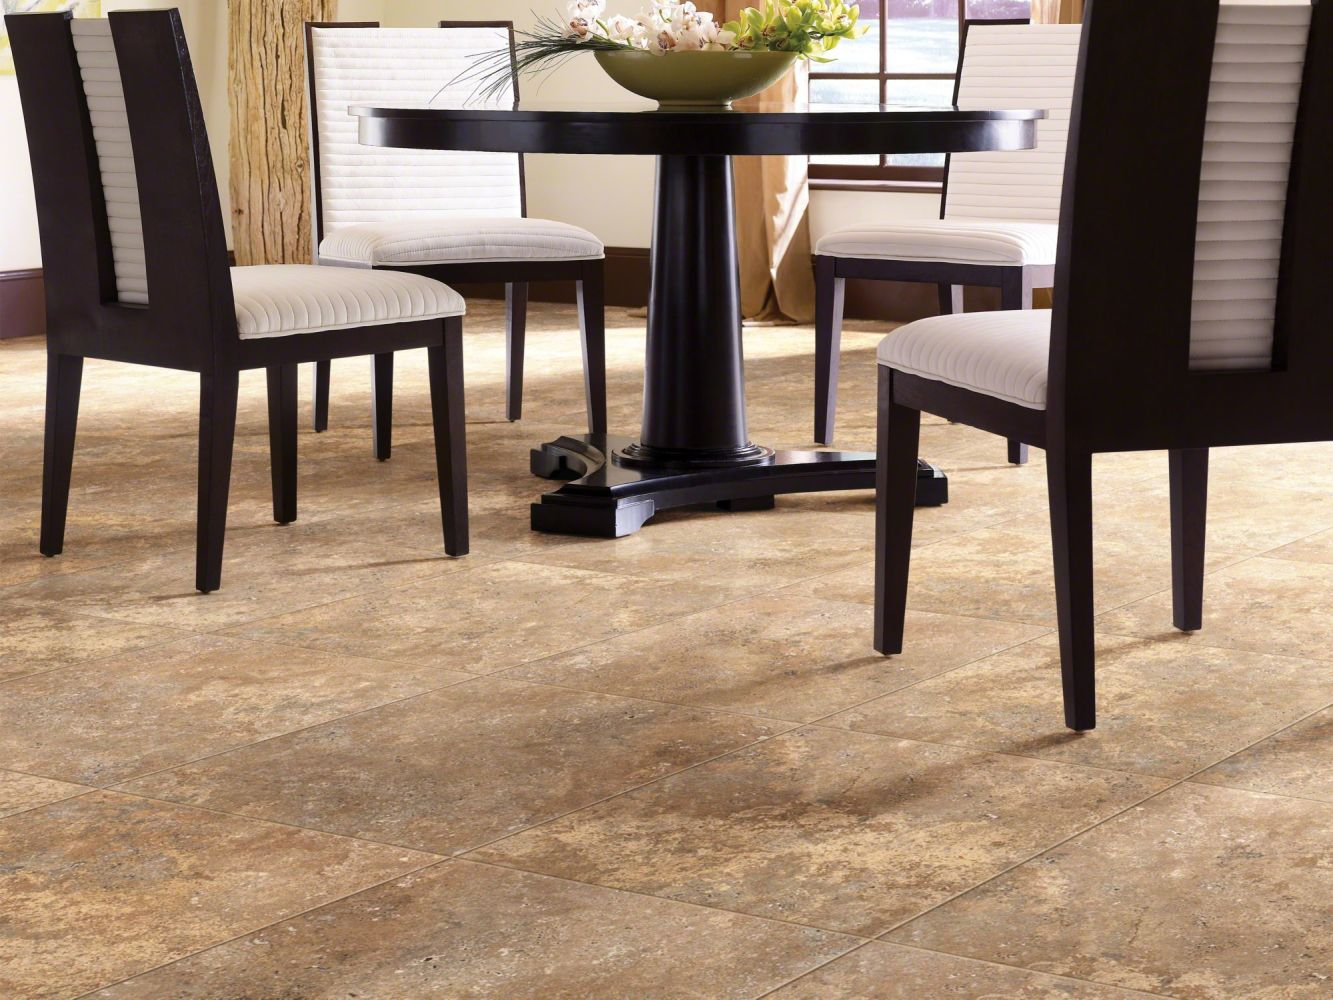 Shaw Floors Nfa HS Serenity Lake Tile Hot Cocoa 00750_VH505